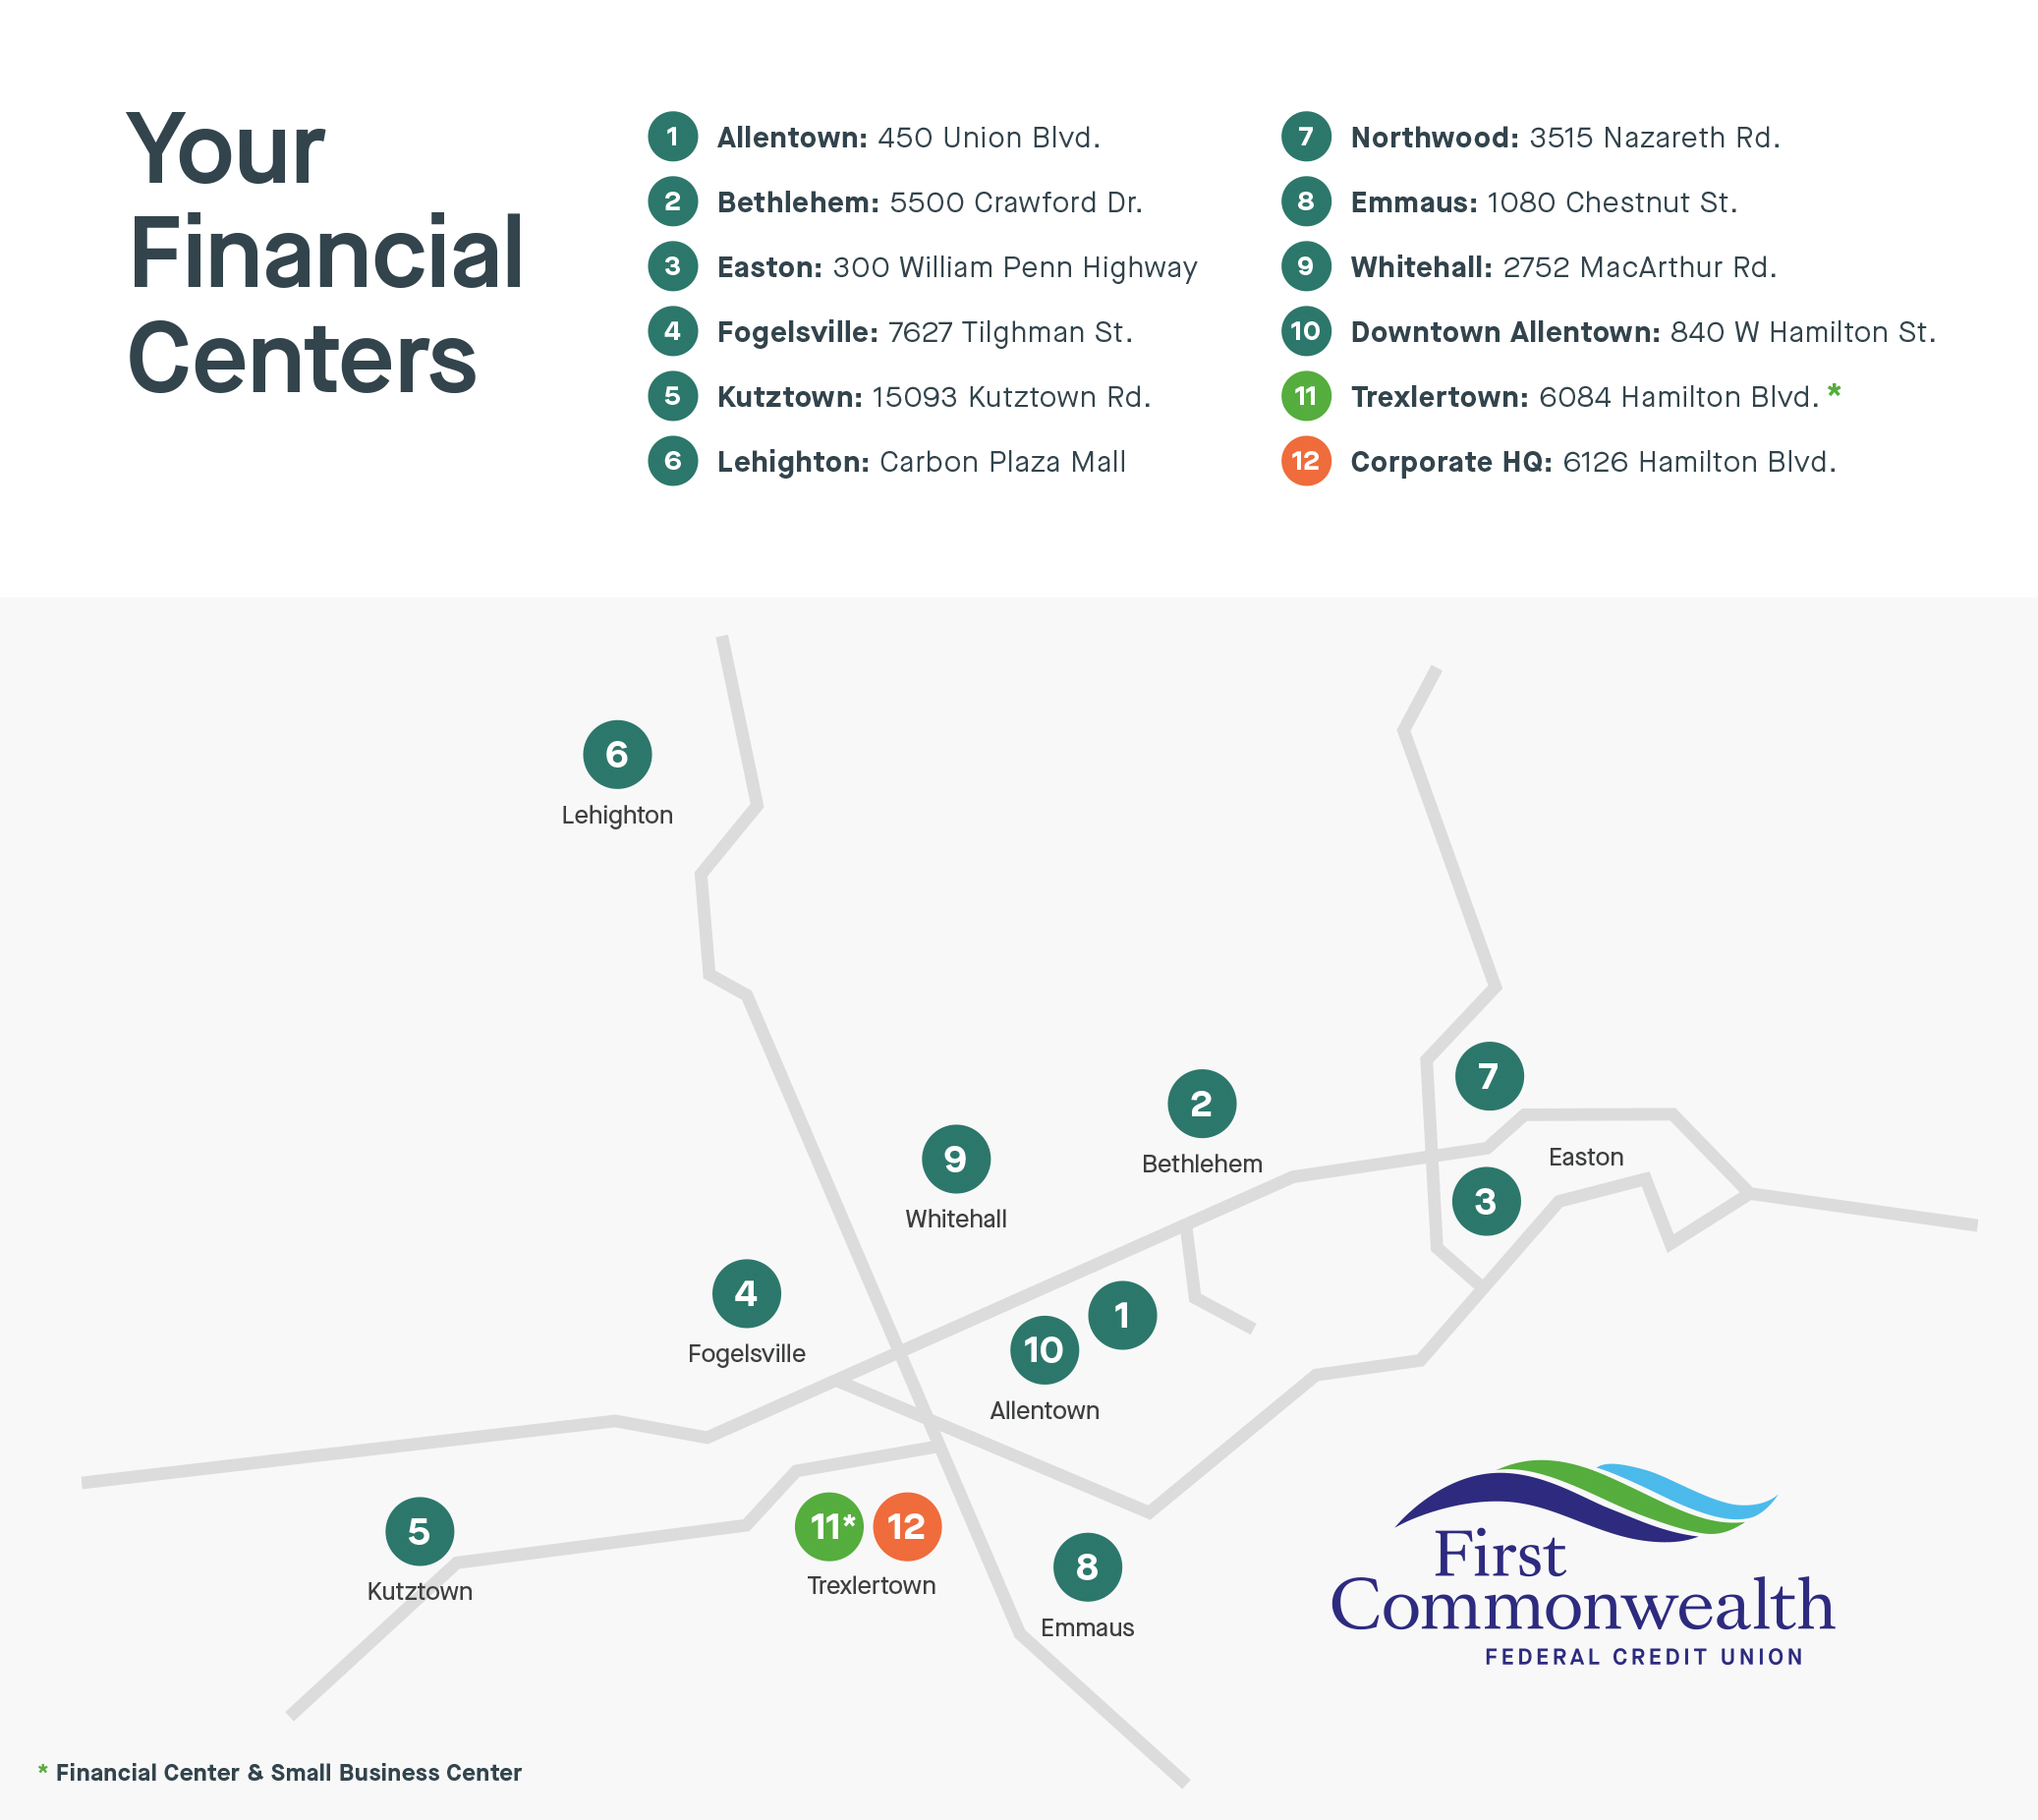 Map of First Commonwealth Federal Credit Union Financial Centers